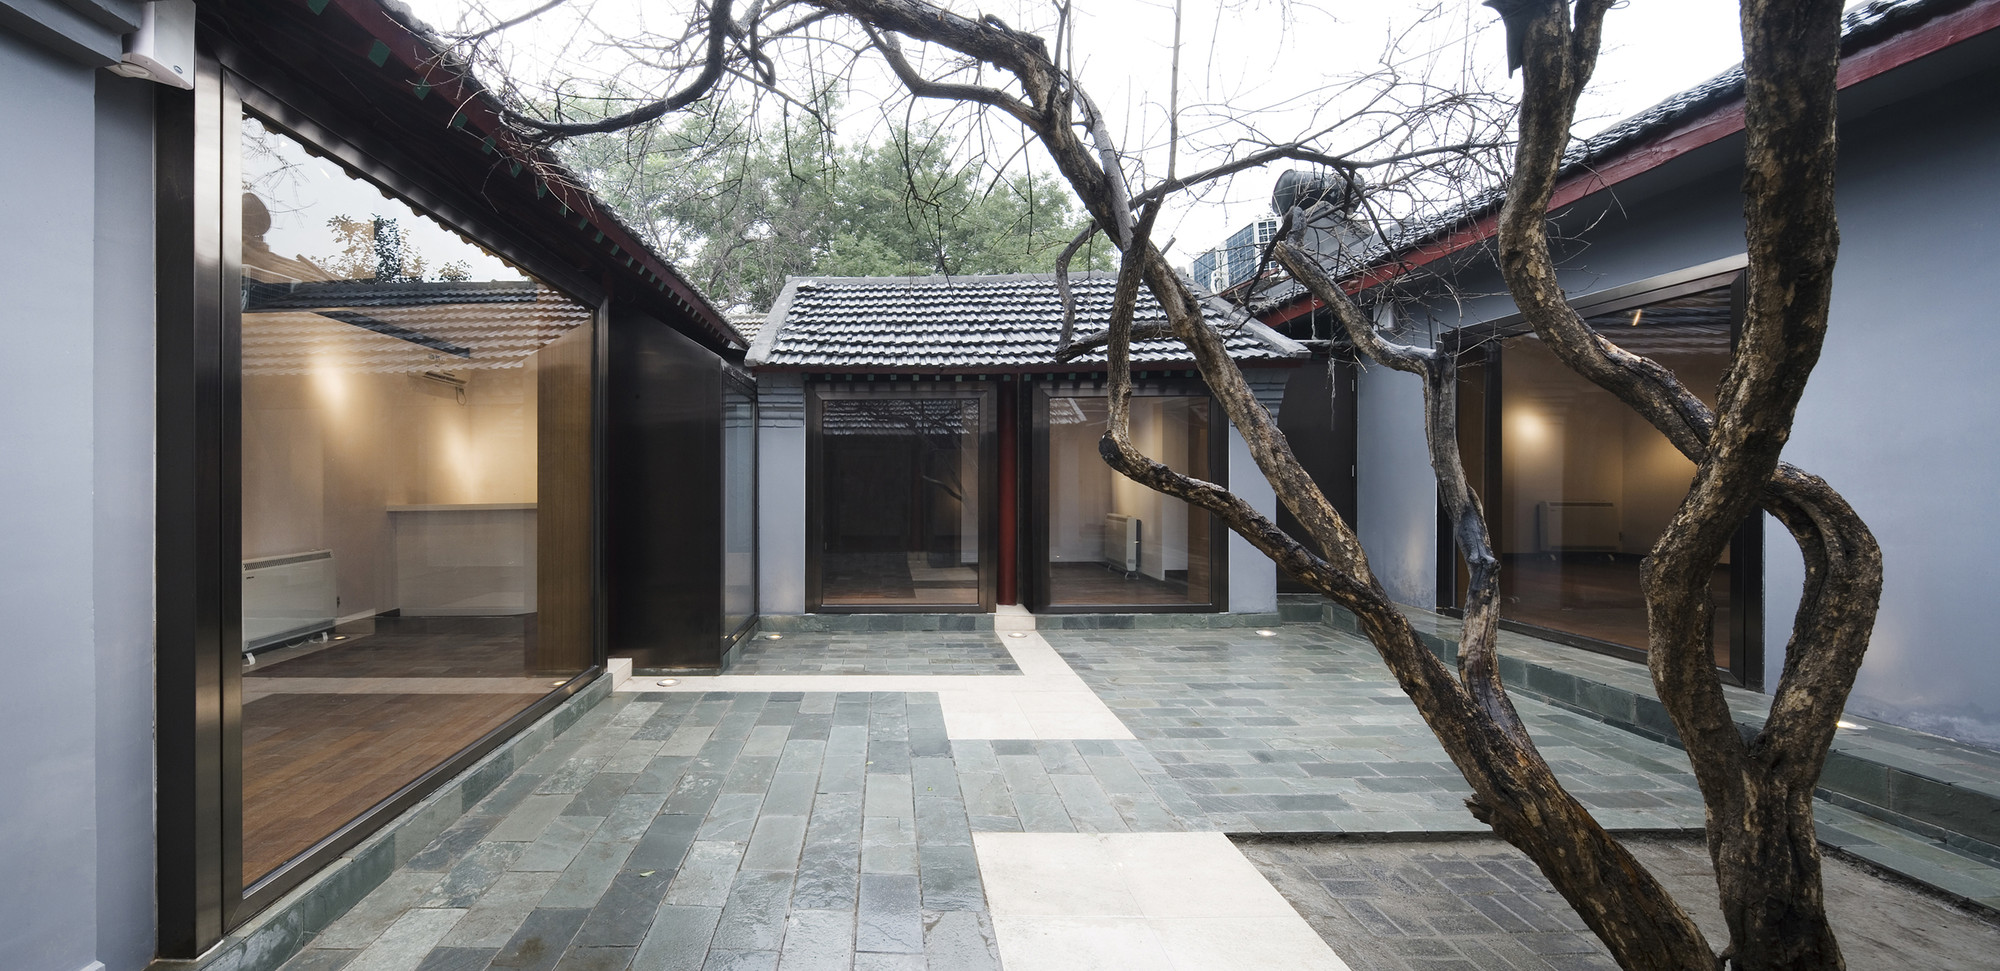 No 18 guan shu yuan hutong atelier liu yuyang for De atelier architects